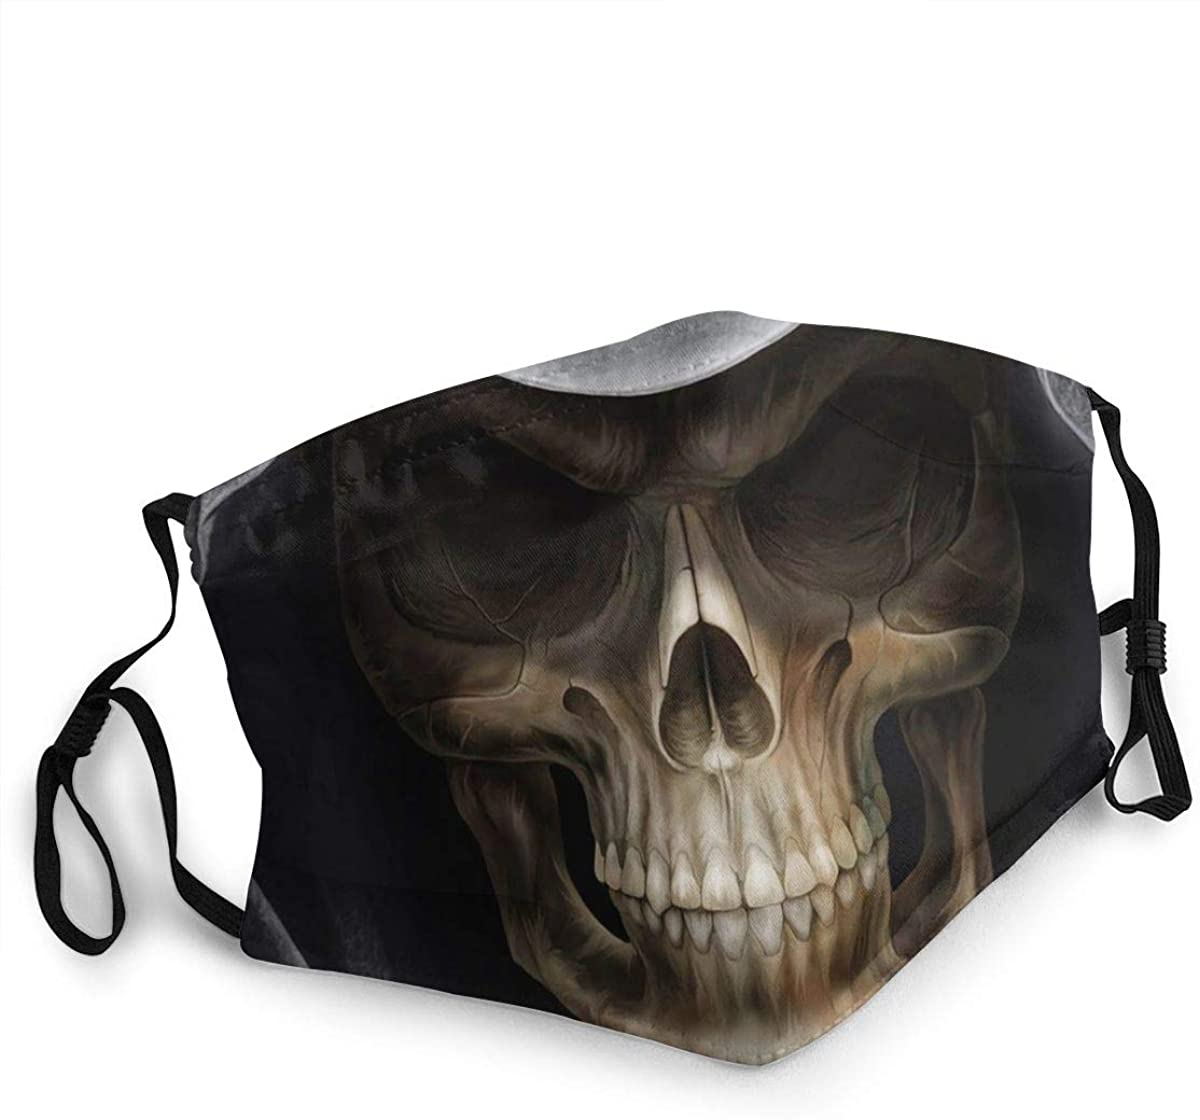 Reusable Fabric Face Scarf - Breathable Adjustable Mouth Shield Protection